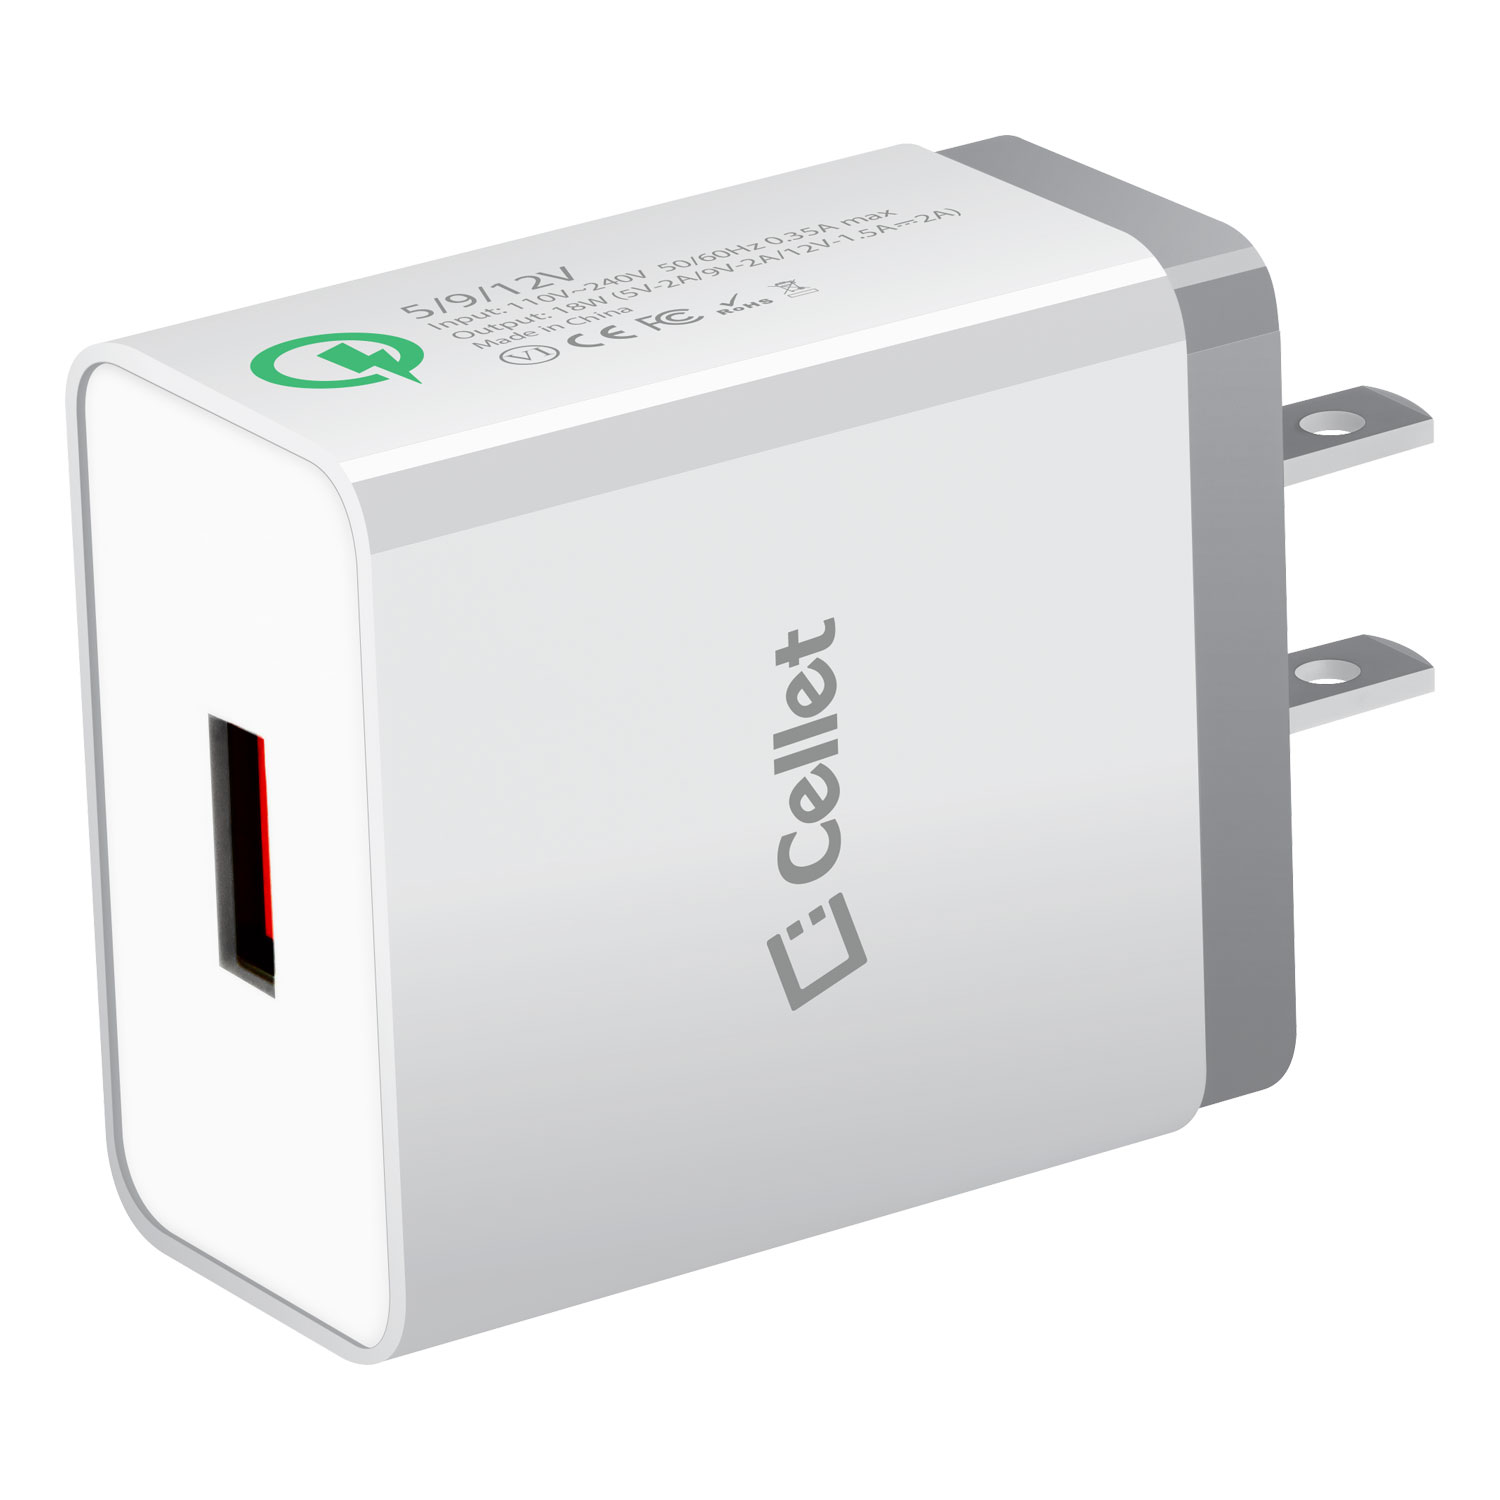 Huawei P9 USB Type-C 4x Quick Home Charger White 3.3ft Round